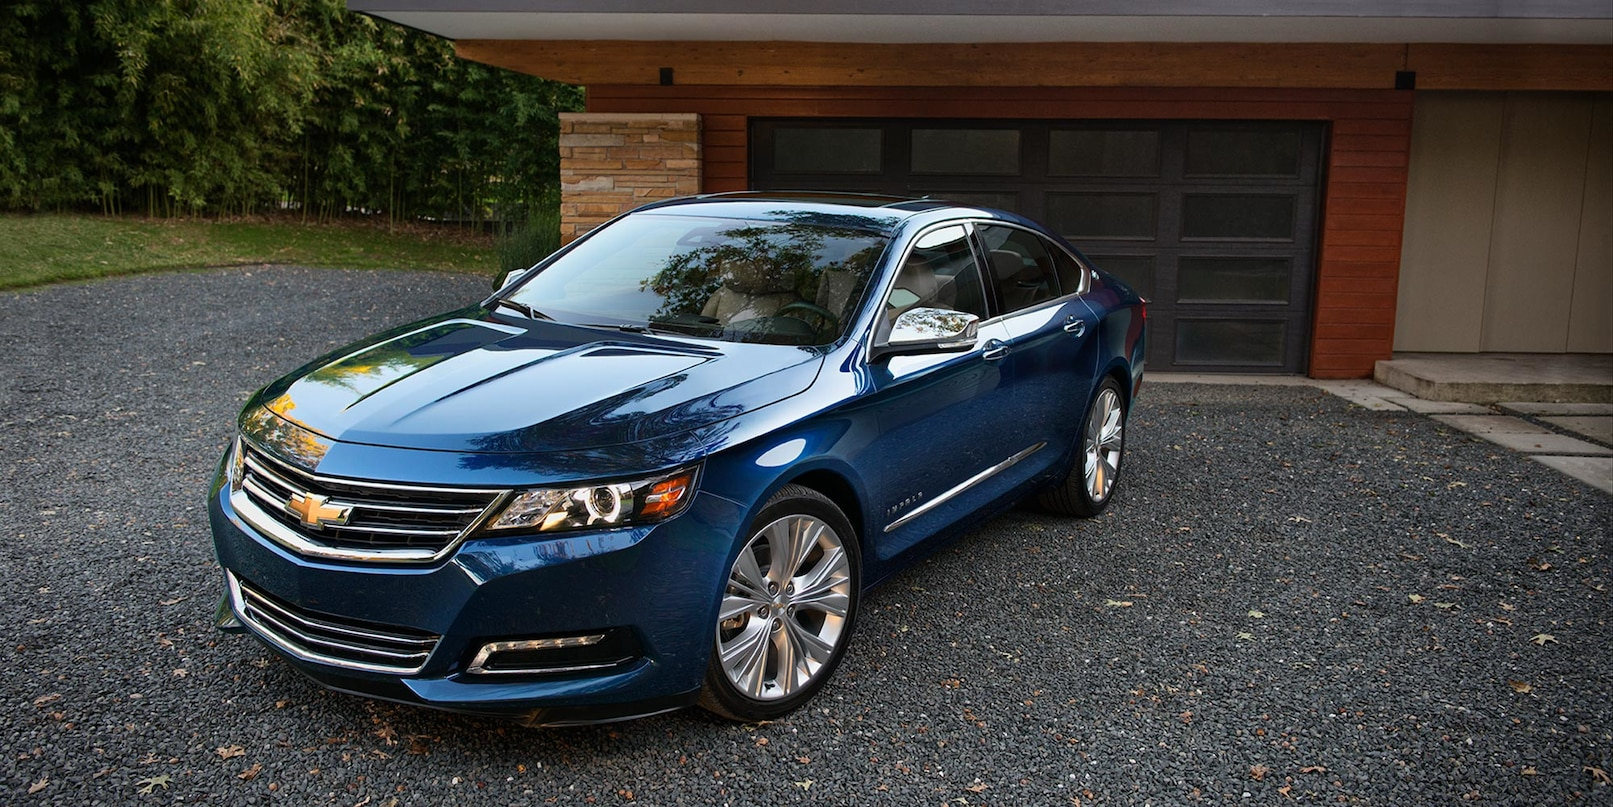 Used Sedans for Sale near Rochester, NY